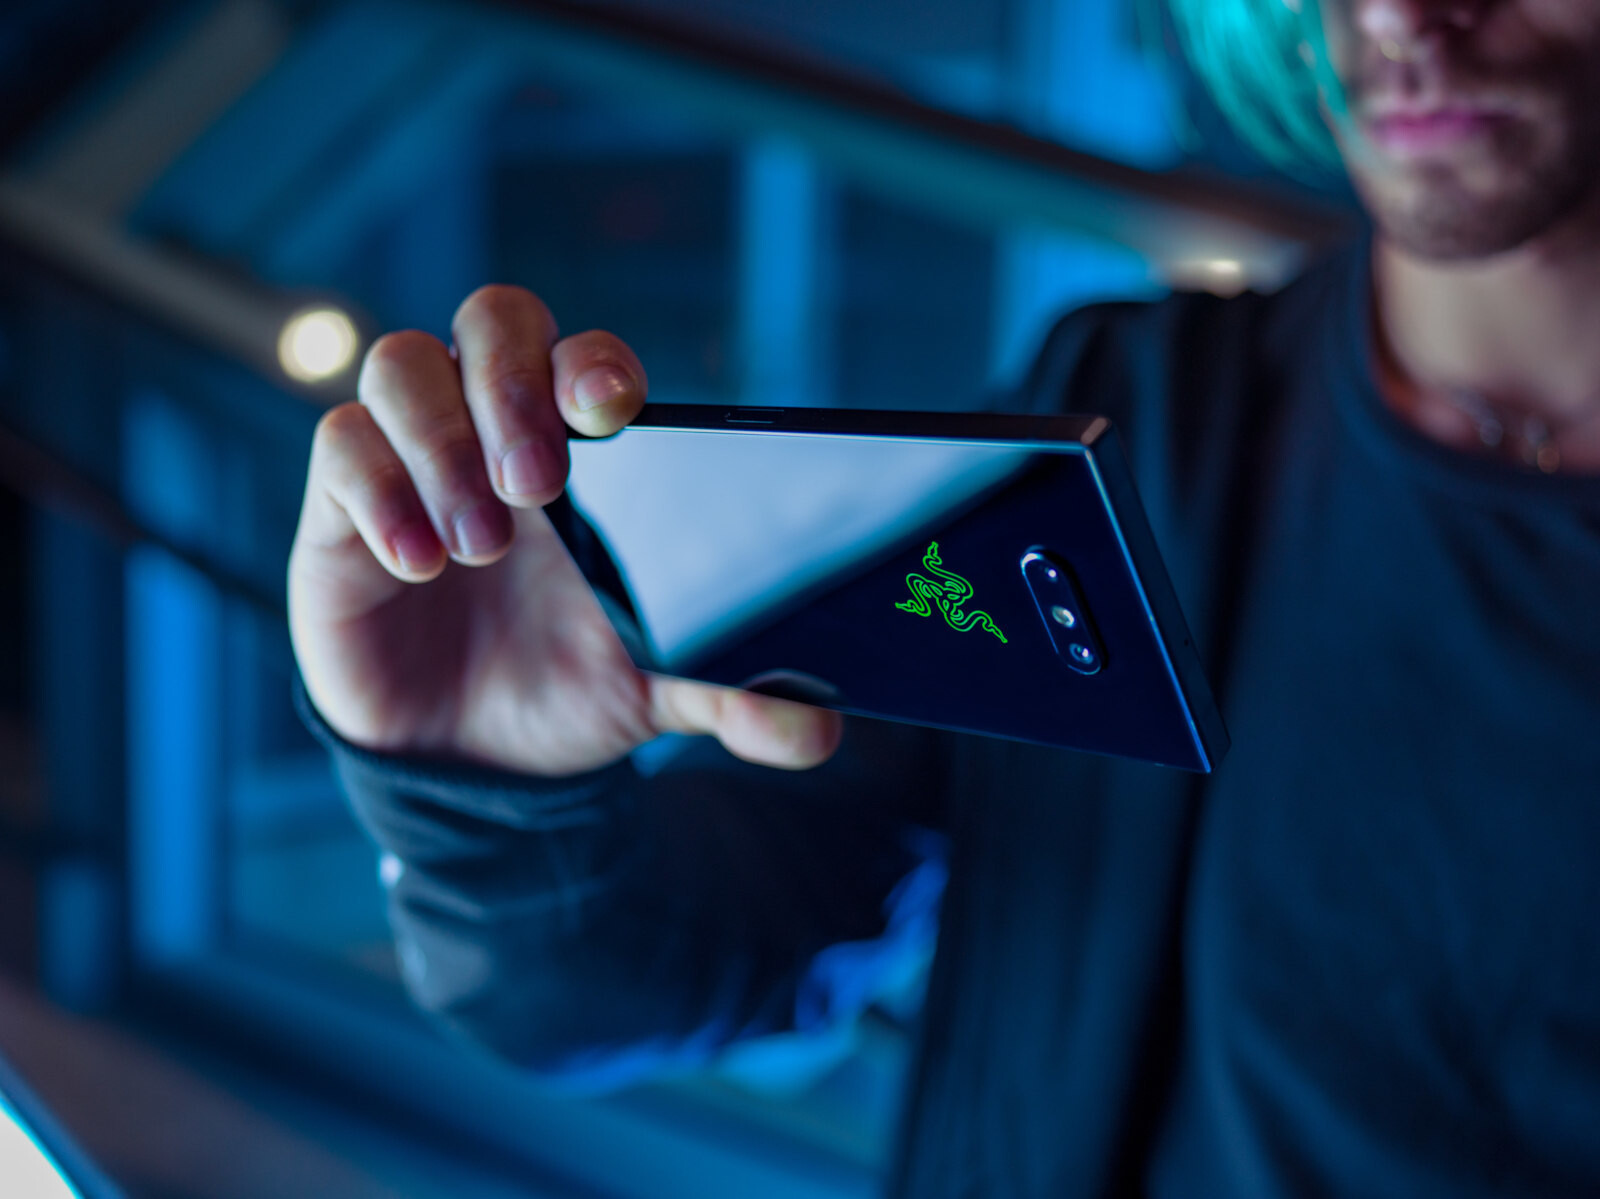 http://i-cdn.phonearena.com//images/articles/333289-image/razer-phone-2-lifestyle-7.jpg